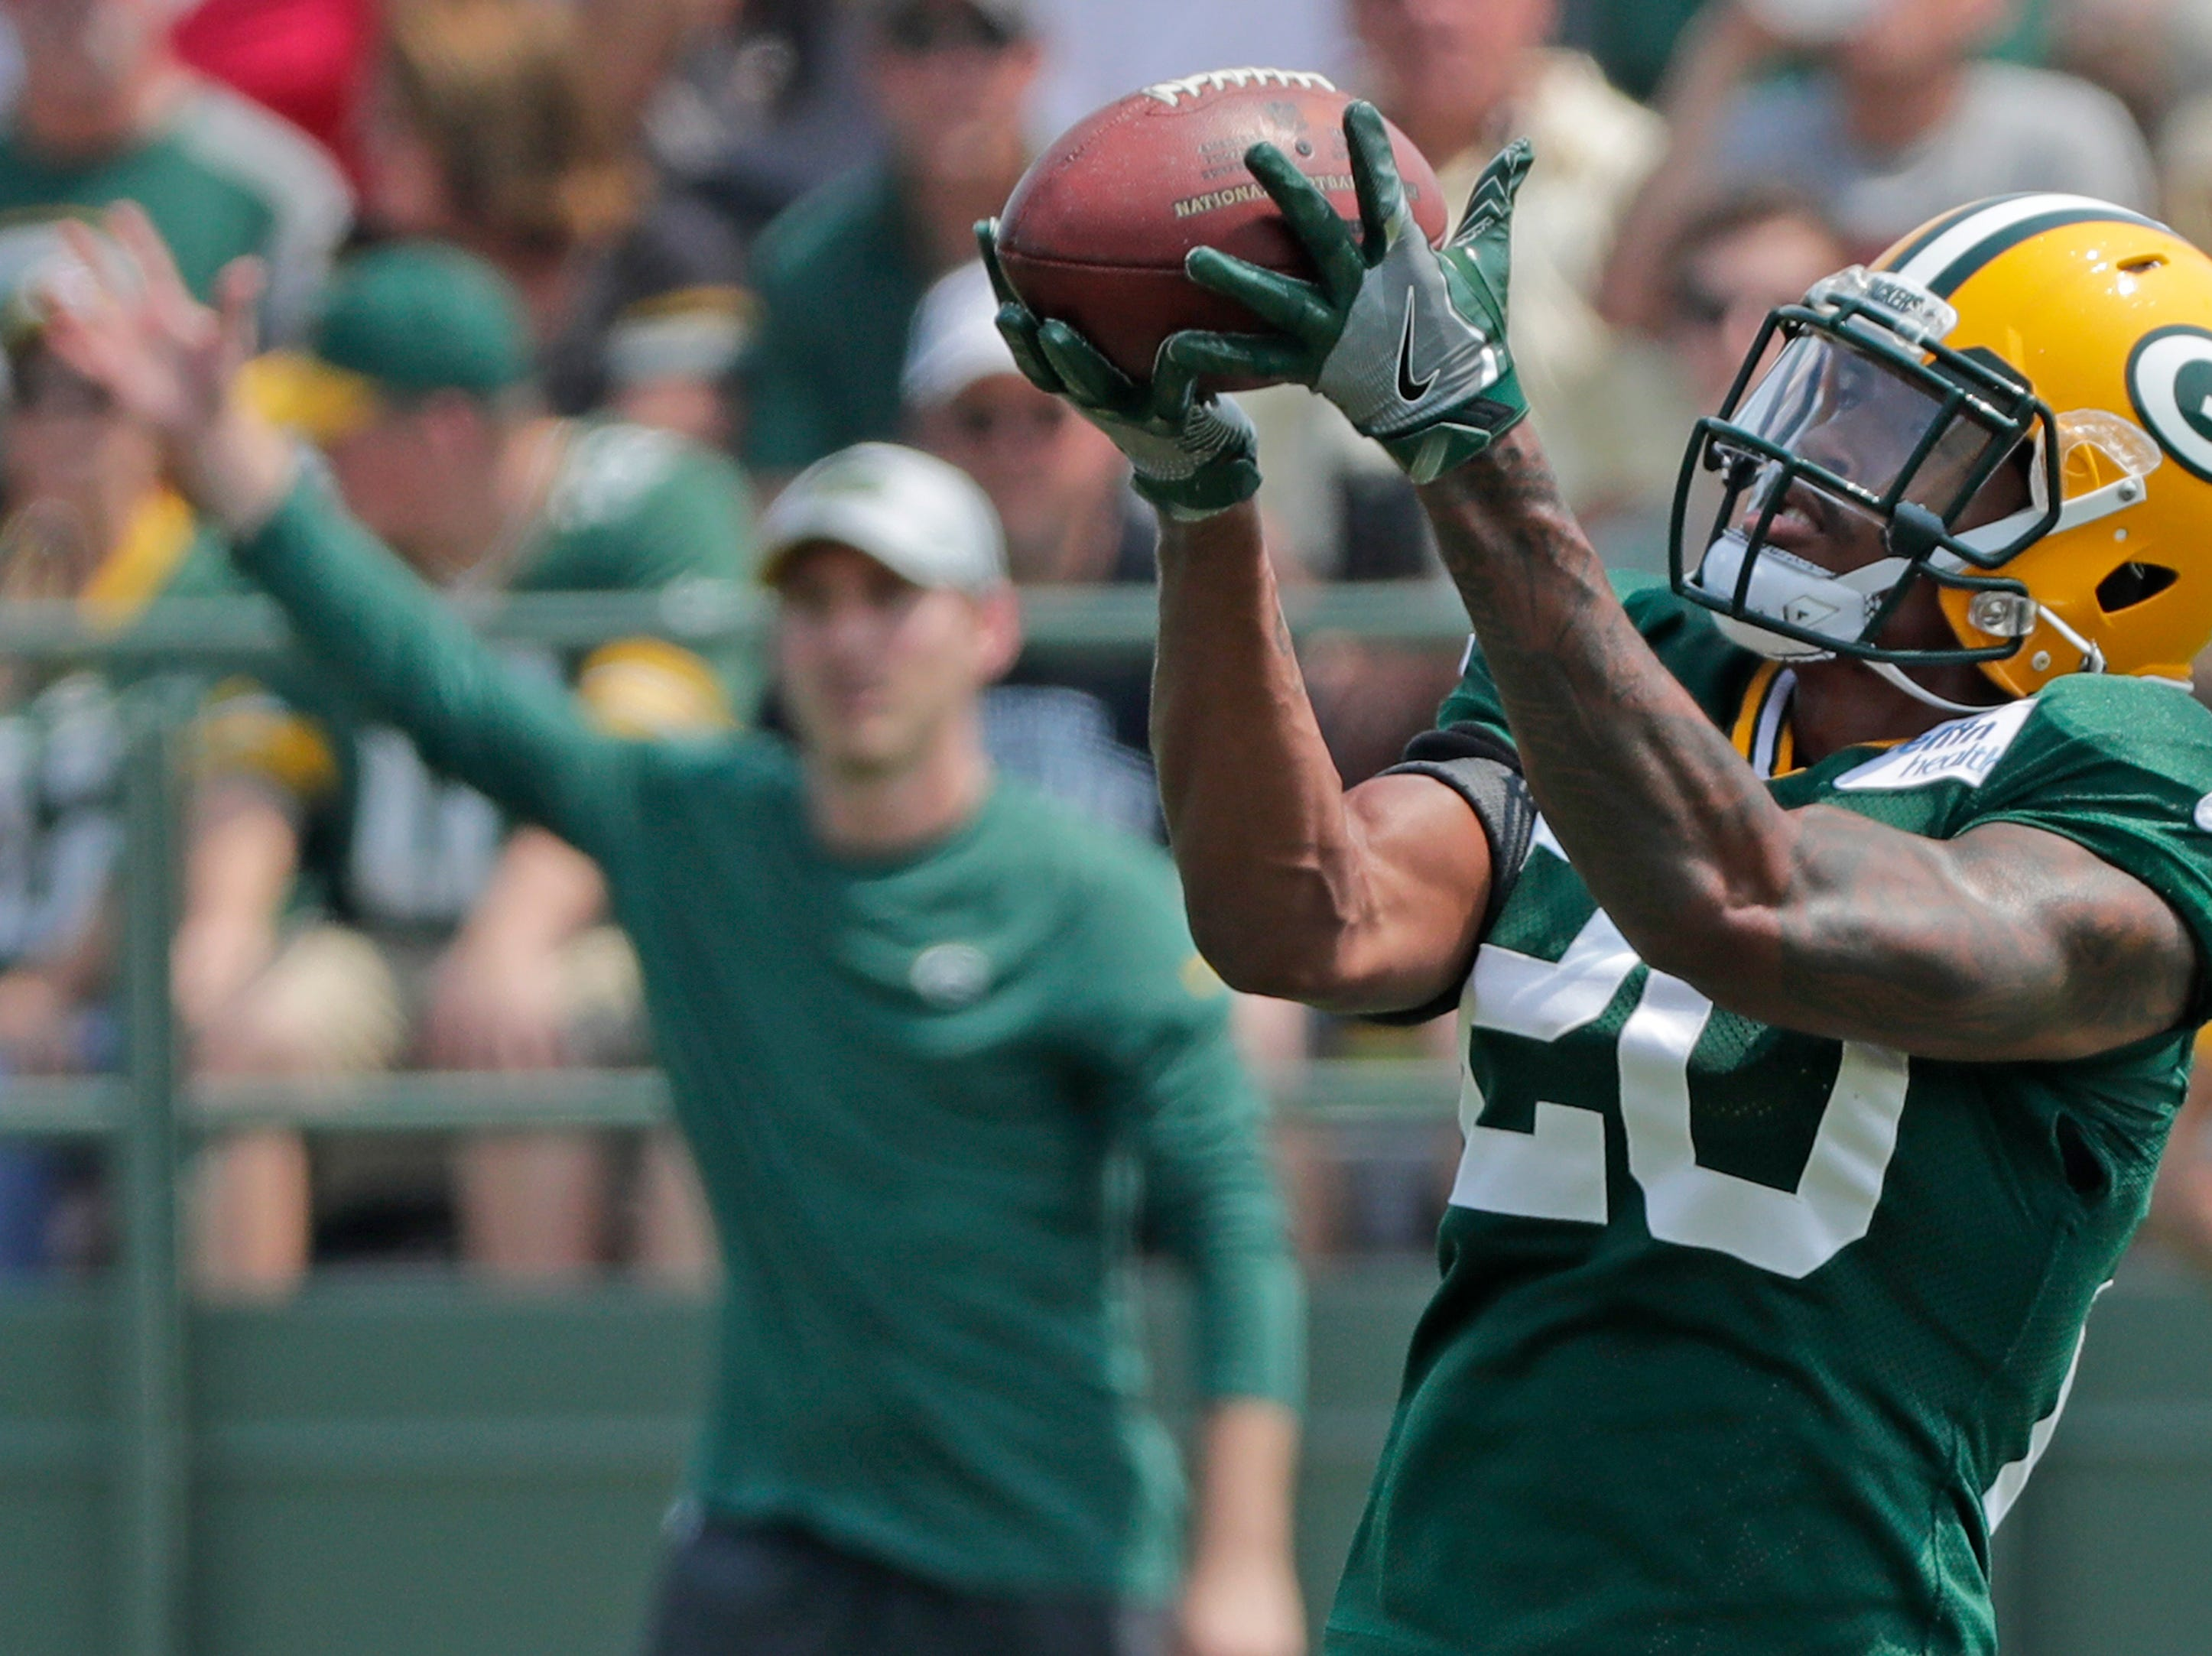 Green Bay Packers cornerback Kevin King (20) during training camp practice at Ray Nitschke Field on Sunday, August 12, 2018 in Ashwaubenon, Wis. 